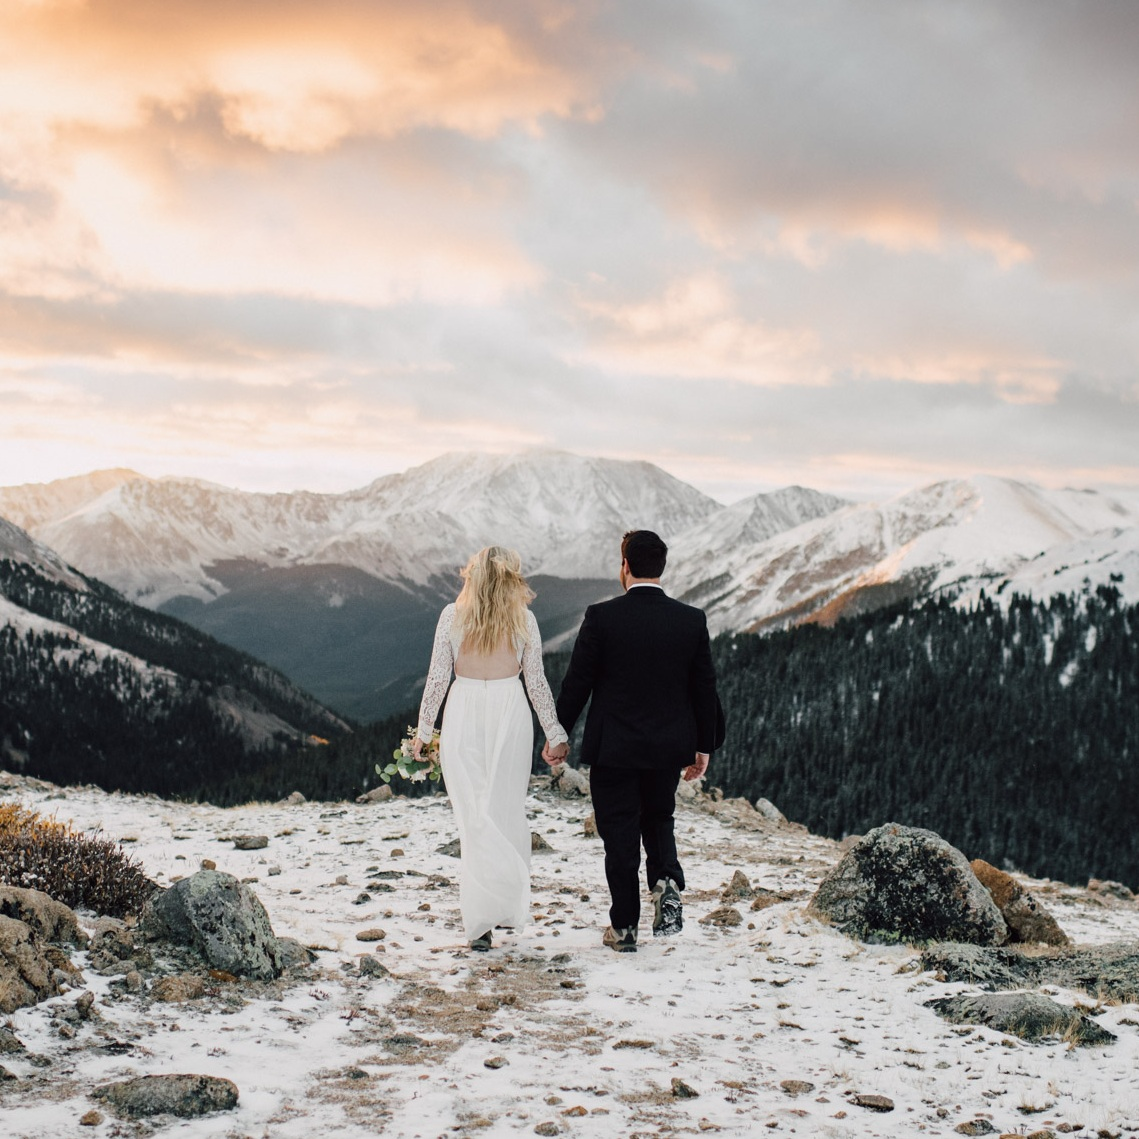 Independence Pass Elopement - Aspen, CO    Alyssa & Harry    View Post